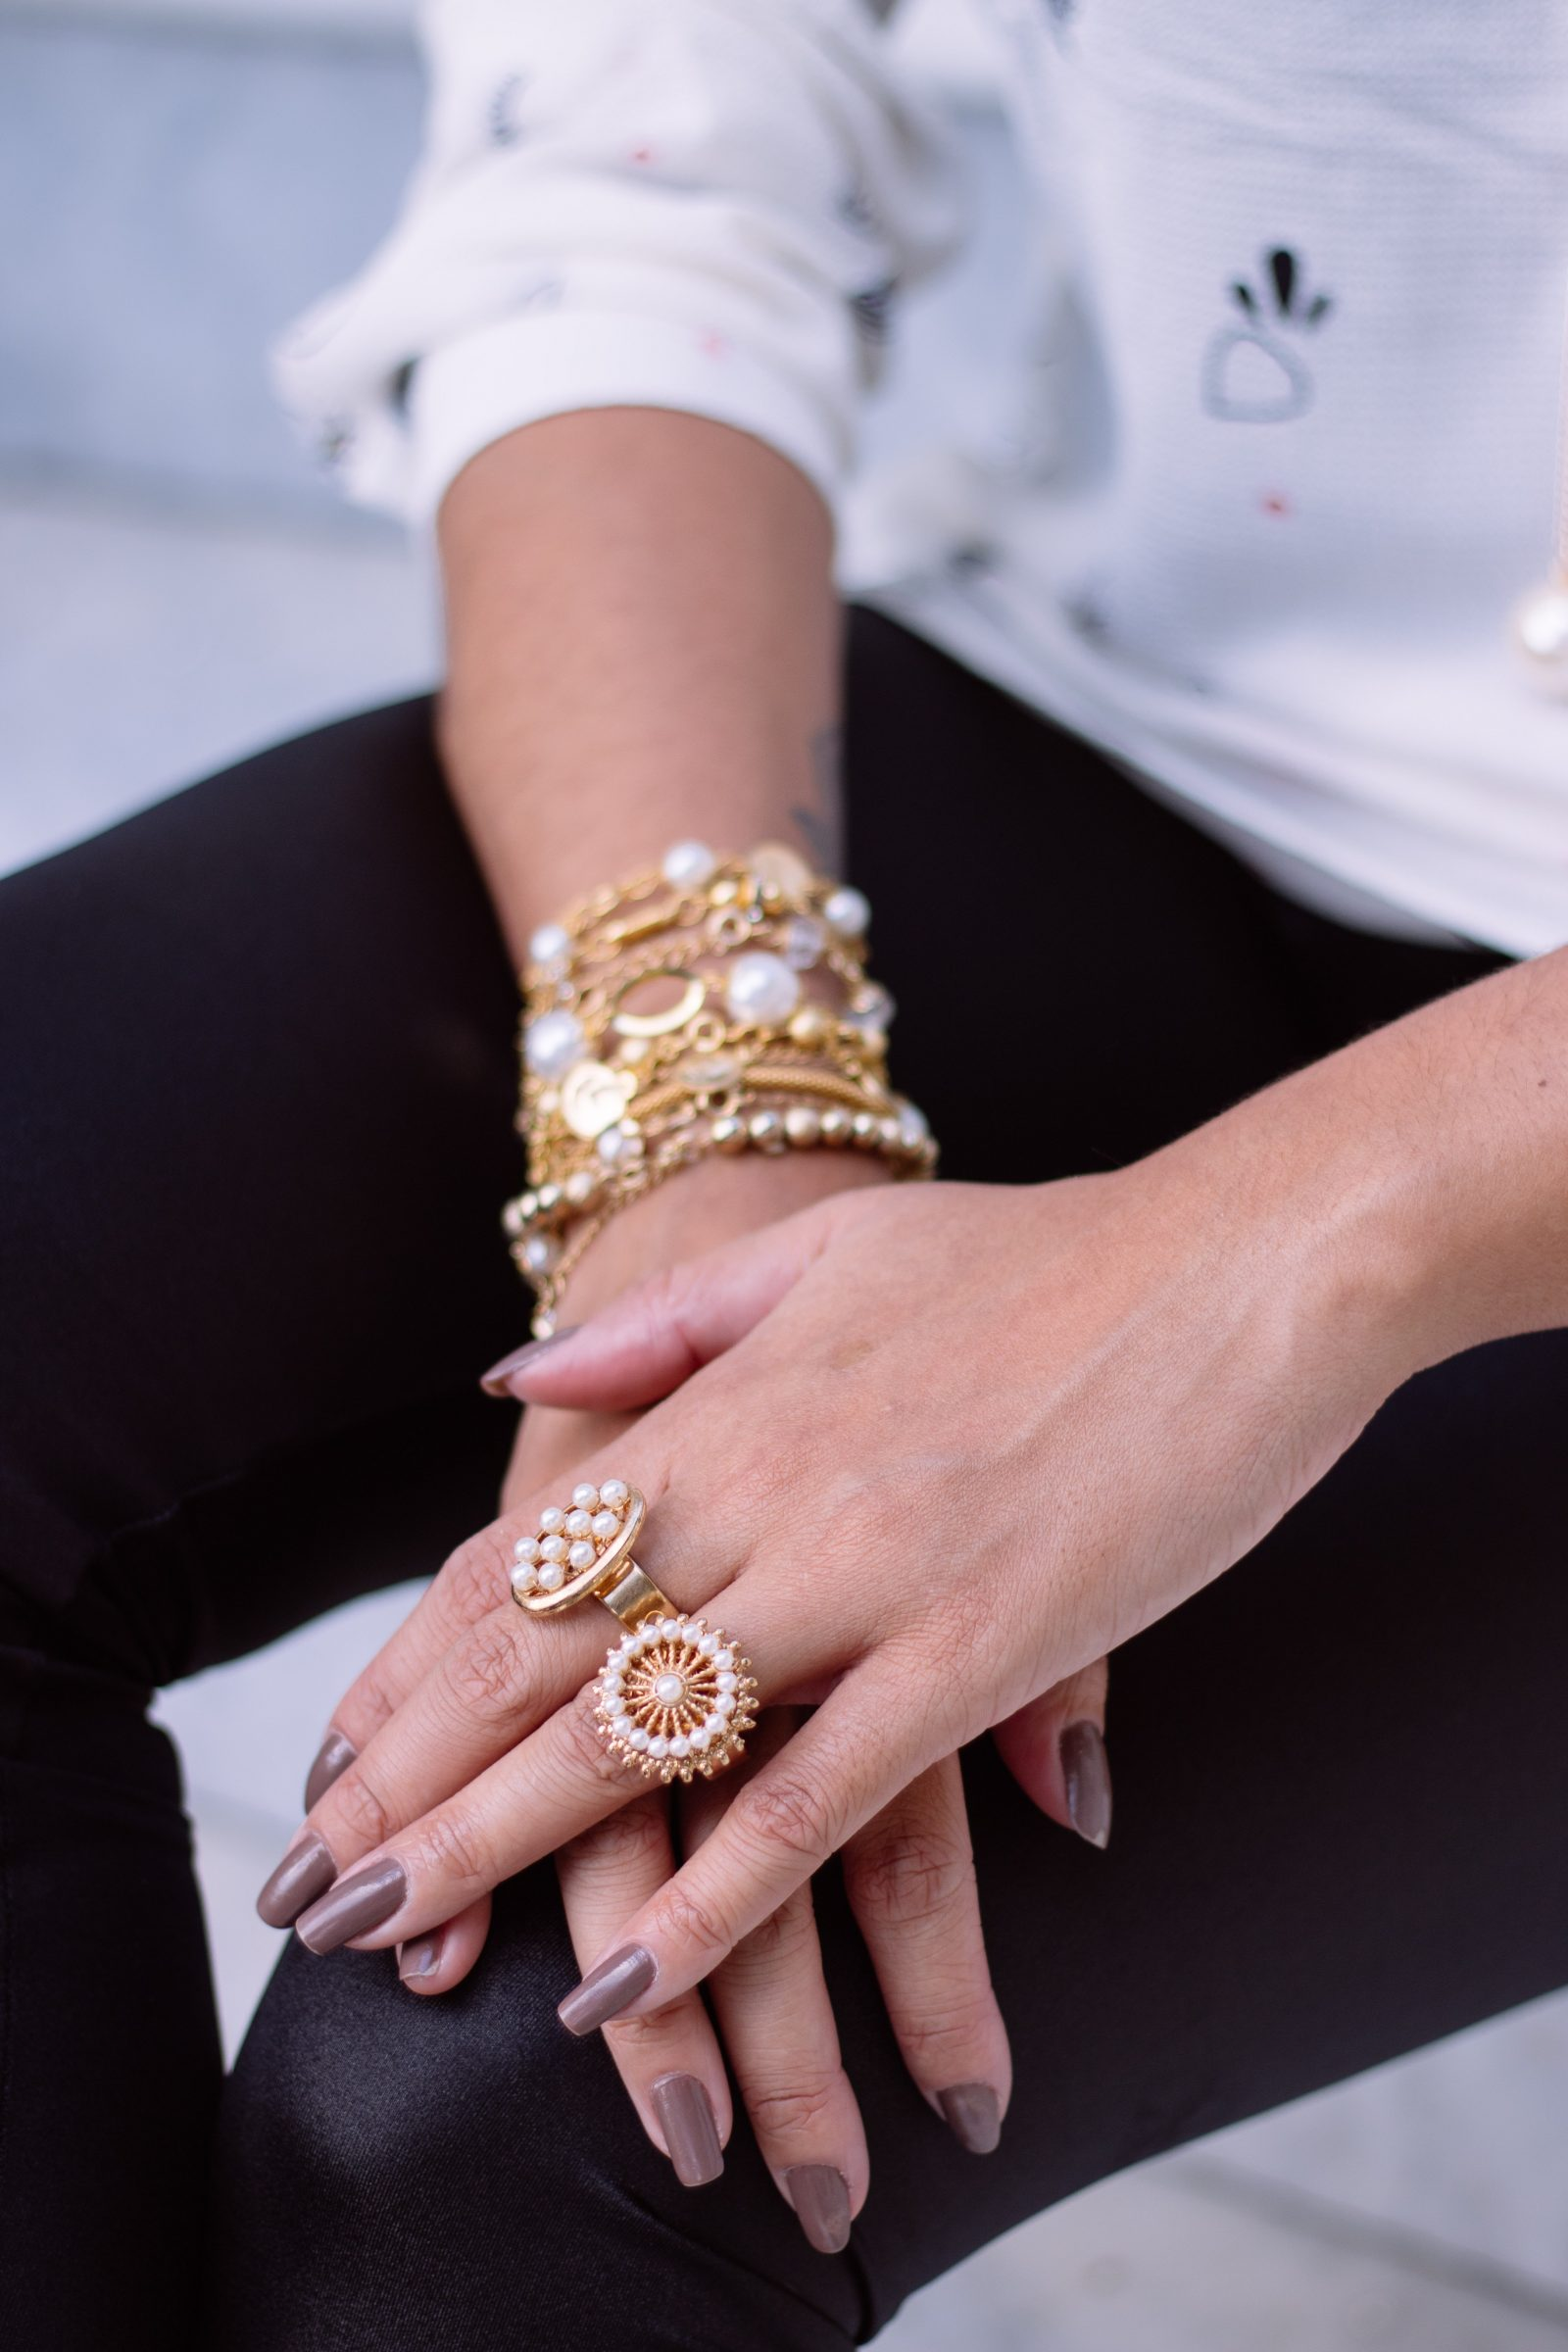 Reasons Why You Should Buy Second Hand Jewellery